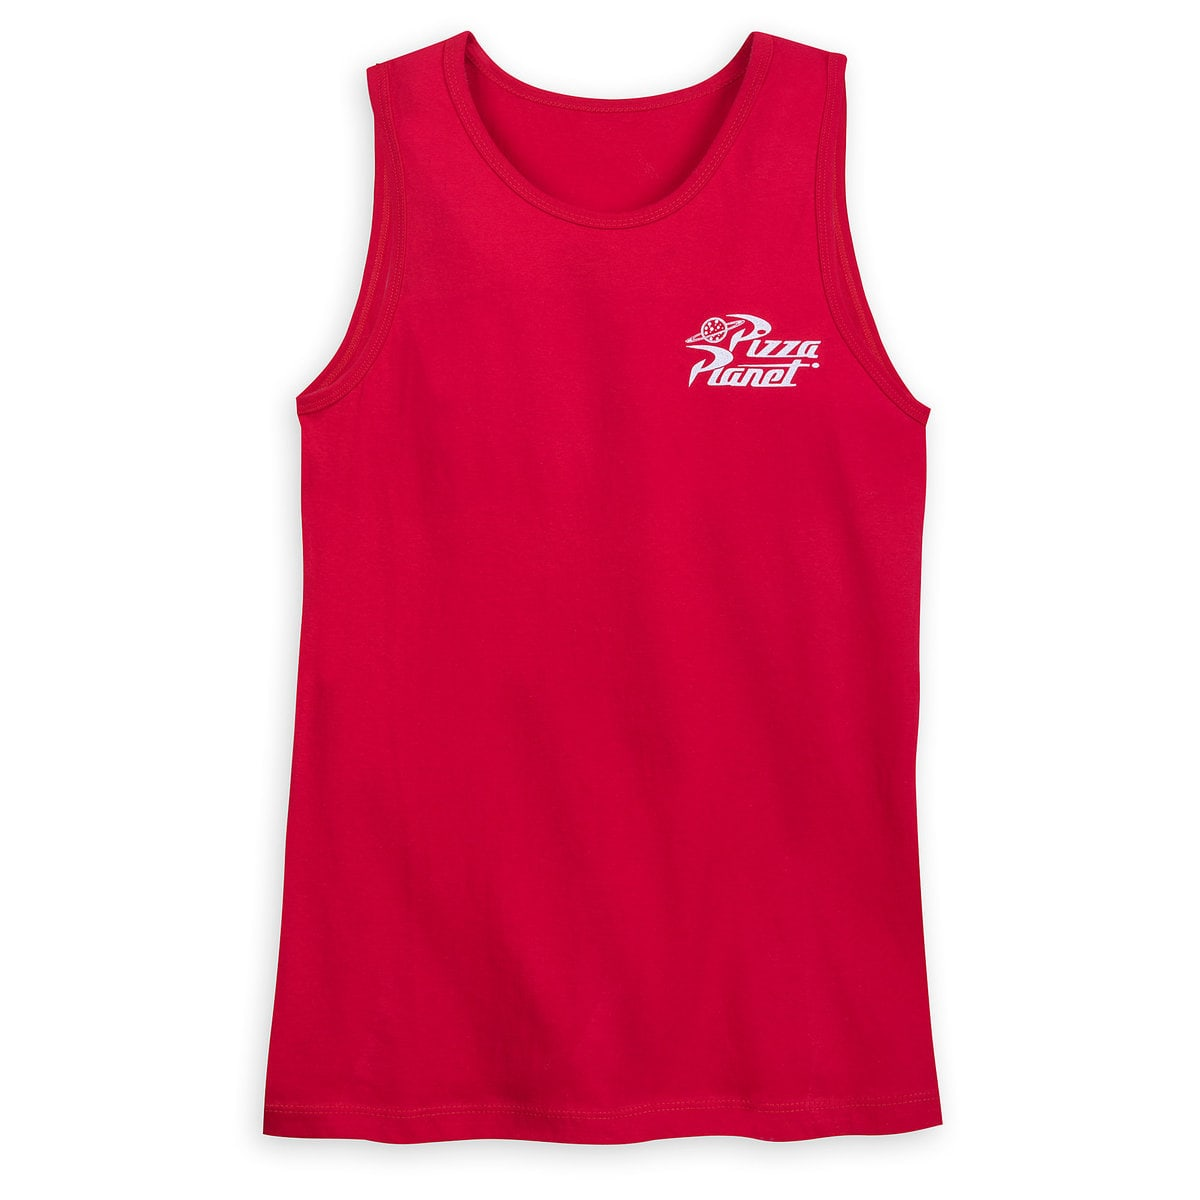 07b7a83e9bf82f Product Image of Pizza Planet Tank Top for Men - Toy Story   1